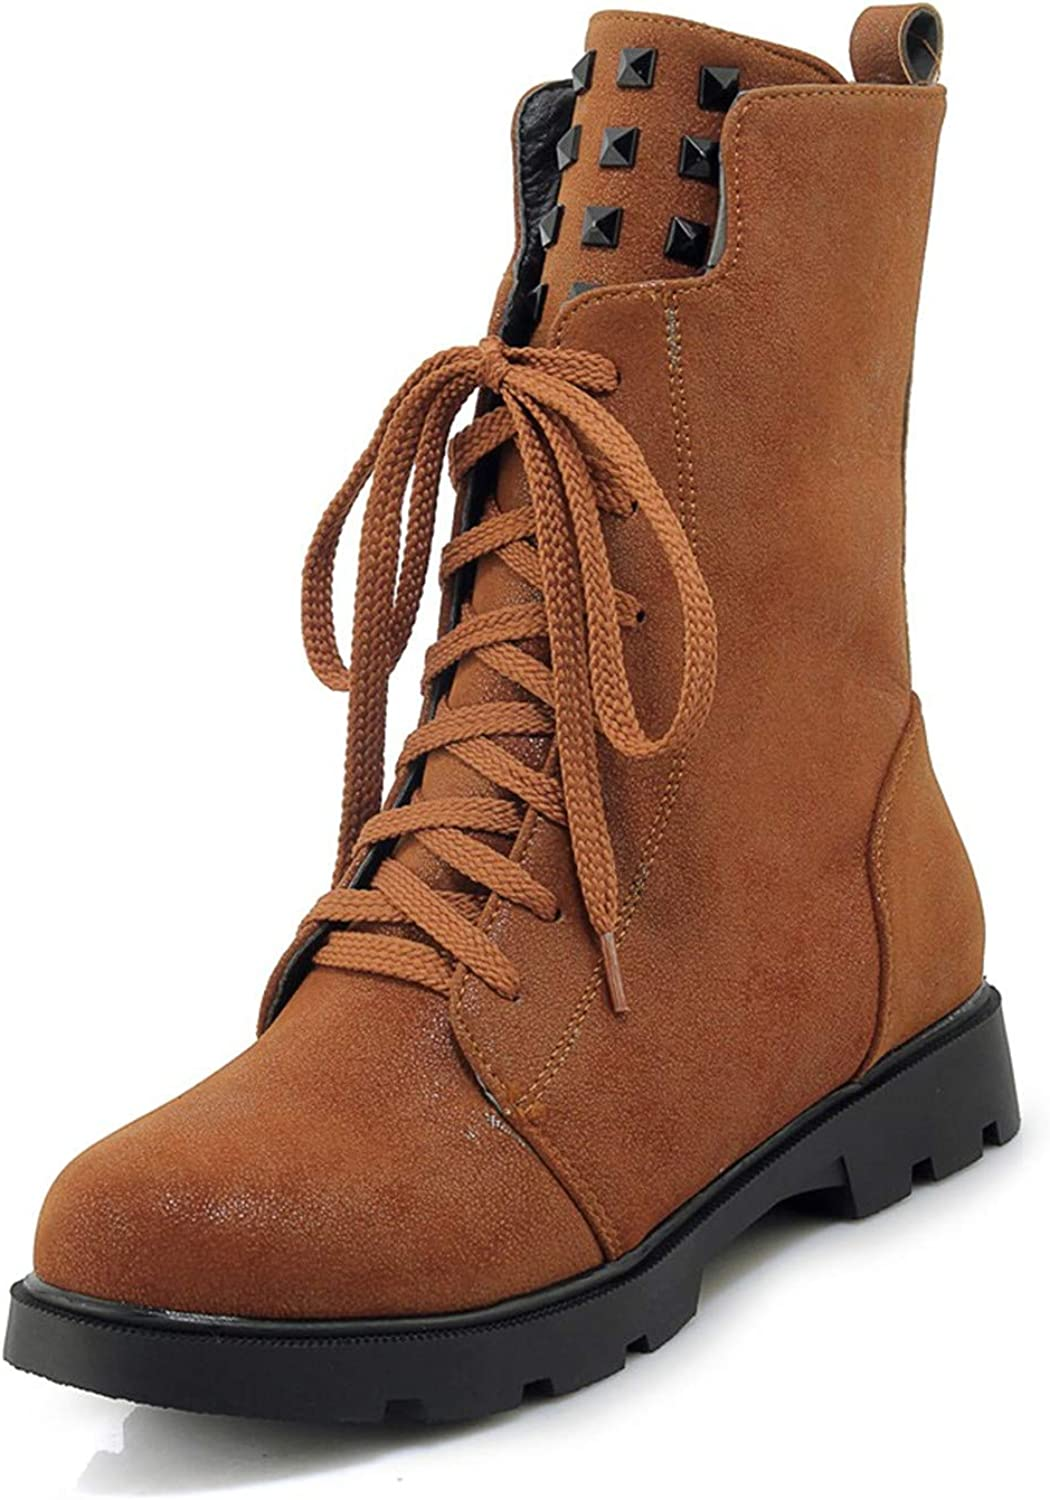 Martin Boots Women shoes Woman Boot Winter Ankle Boots Leisure Woman shoes